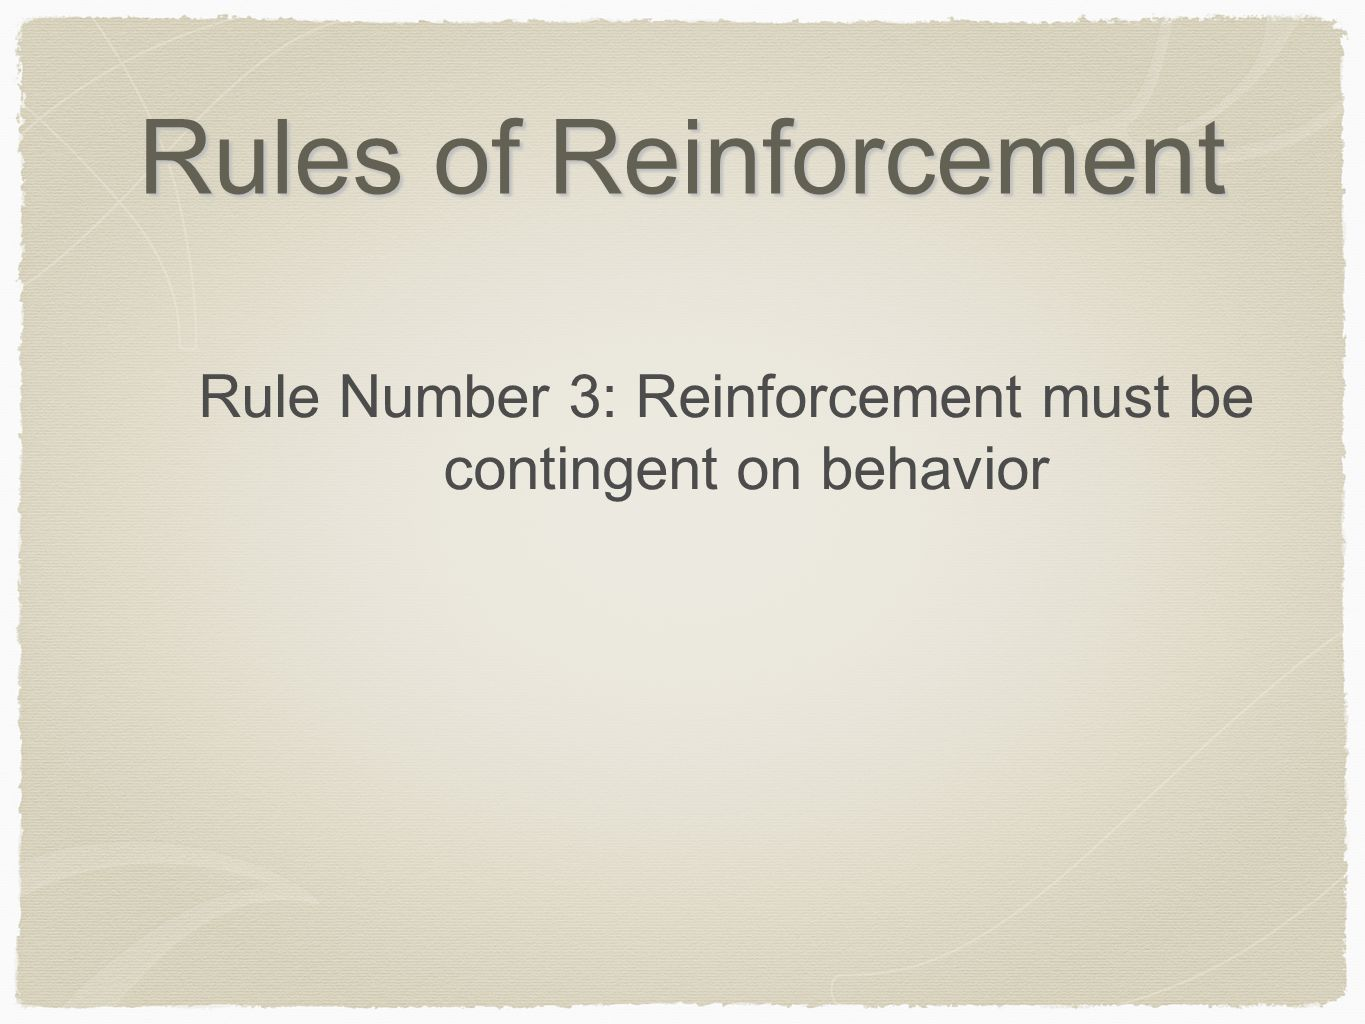 Rules of Reinforcement Rule Number 3: Reinforcement must be contingent on behavior